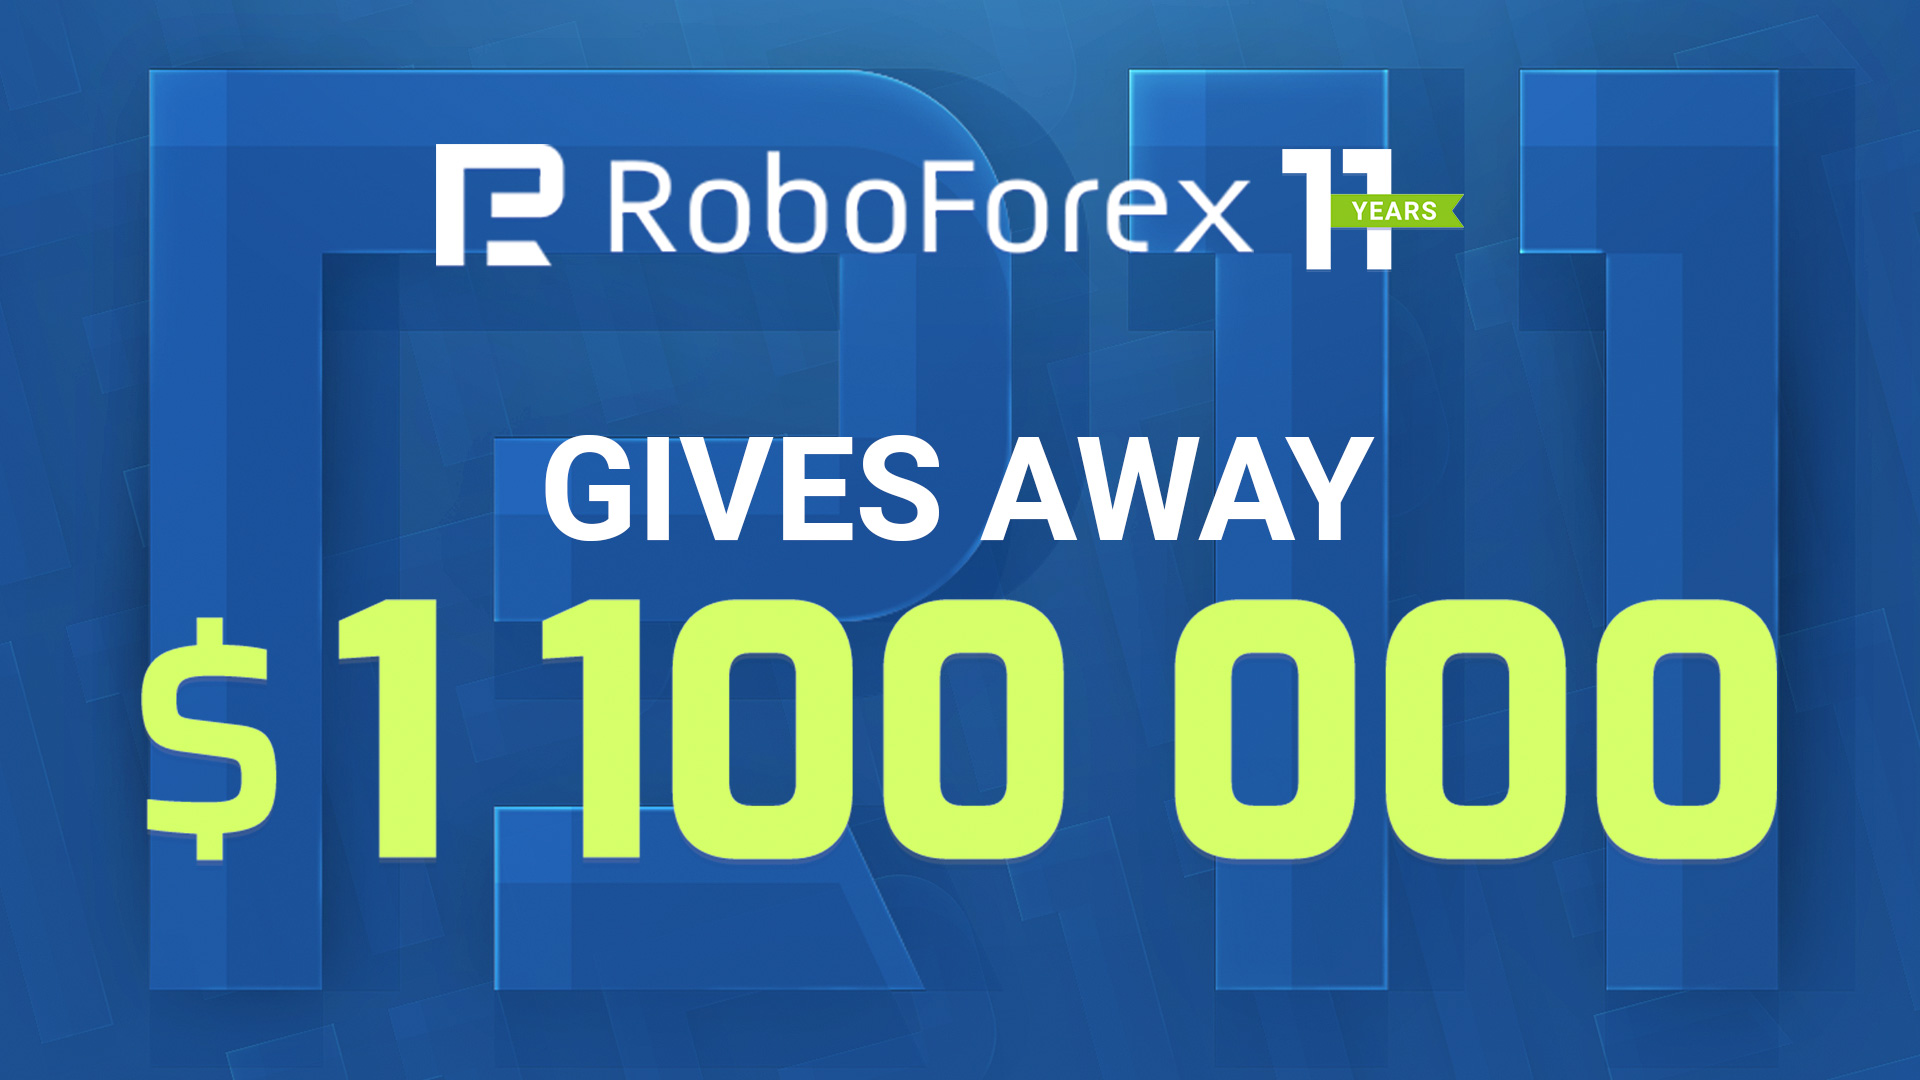 RoboForex Gives Away $1,100,000 on the Occasion of Its 11th Birthday